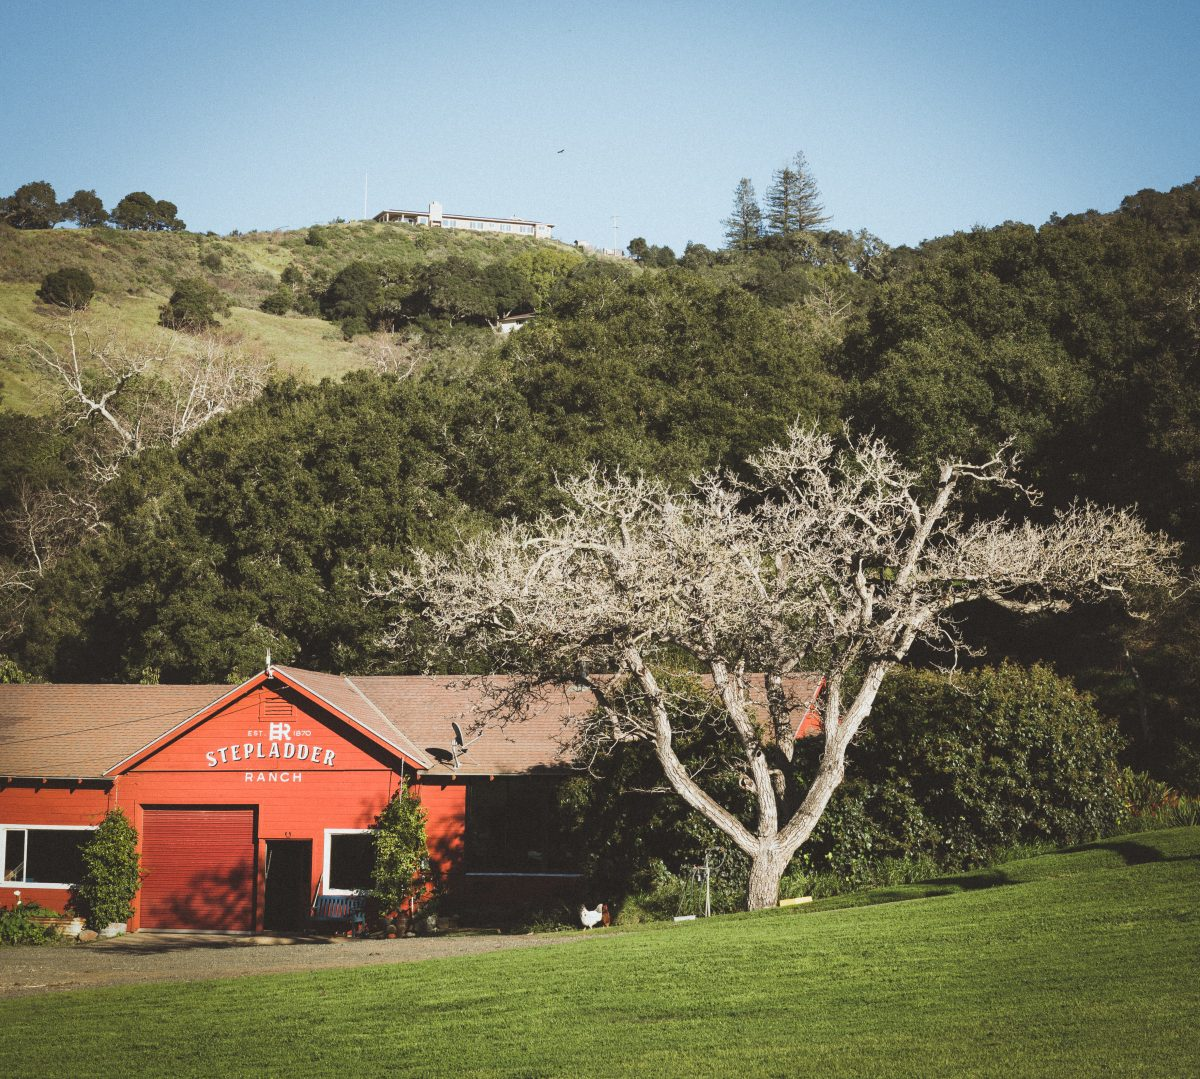 Stepladder Ranch: The Outdoor Wedding Venue...Can You Spot The Big House?